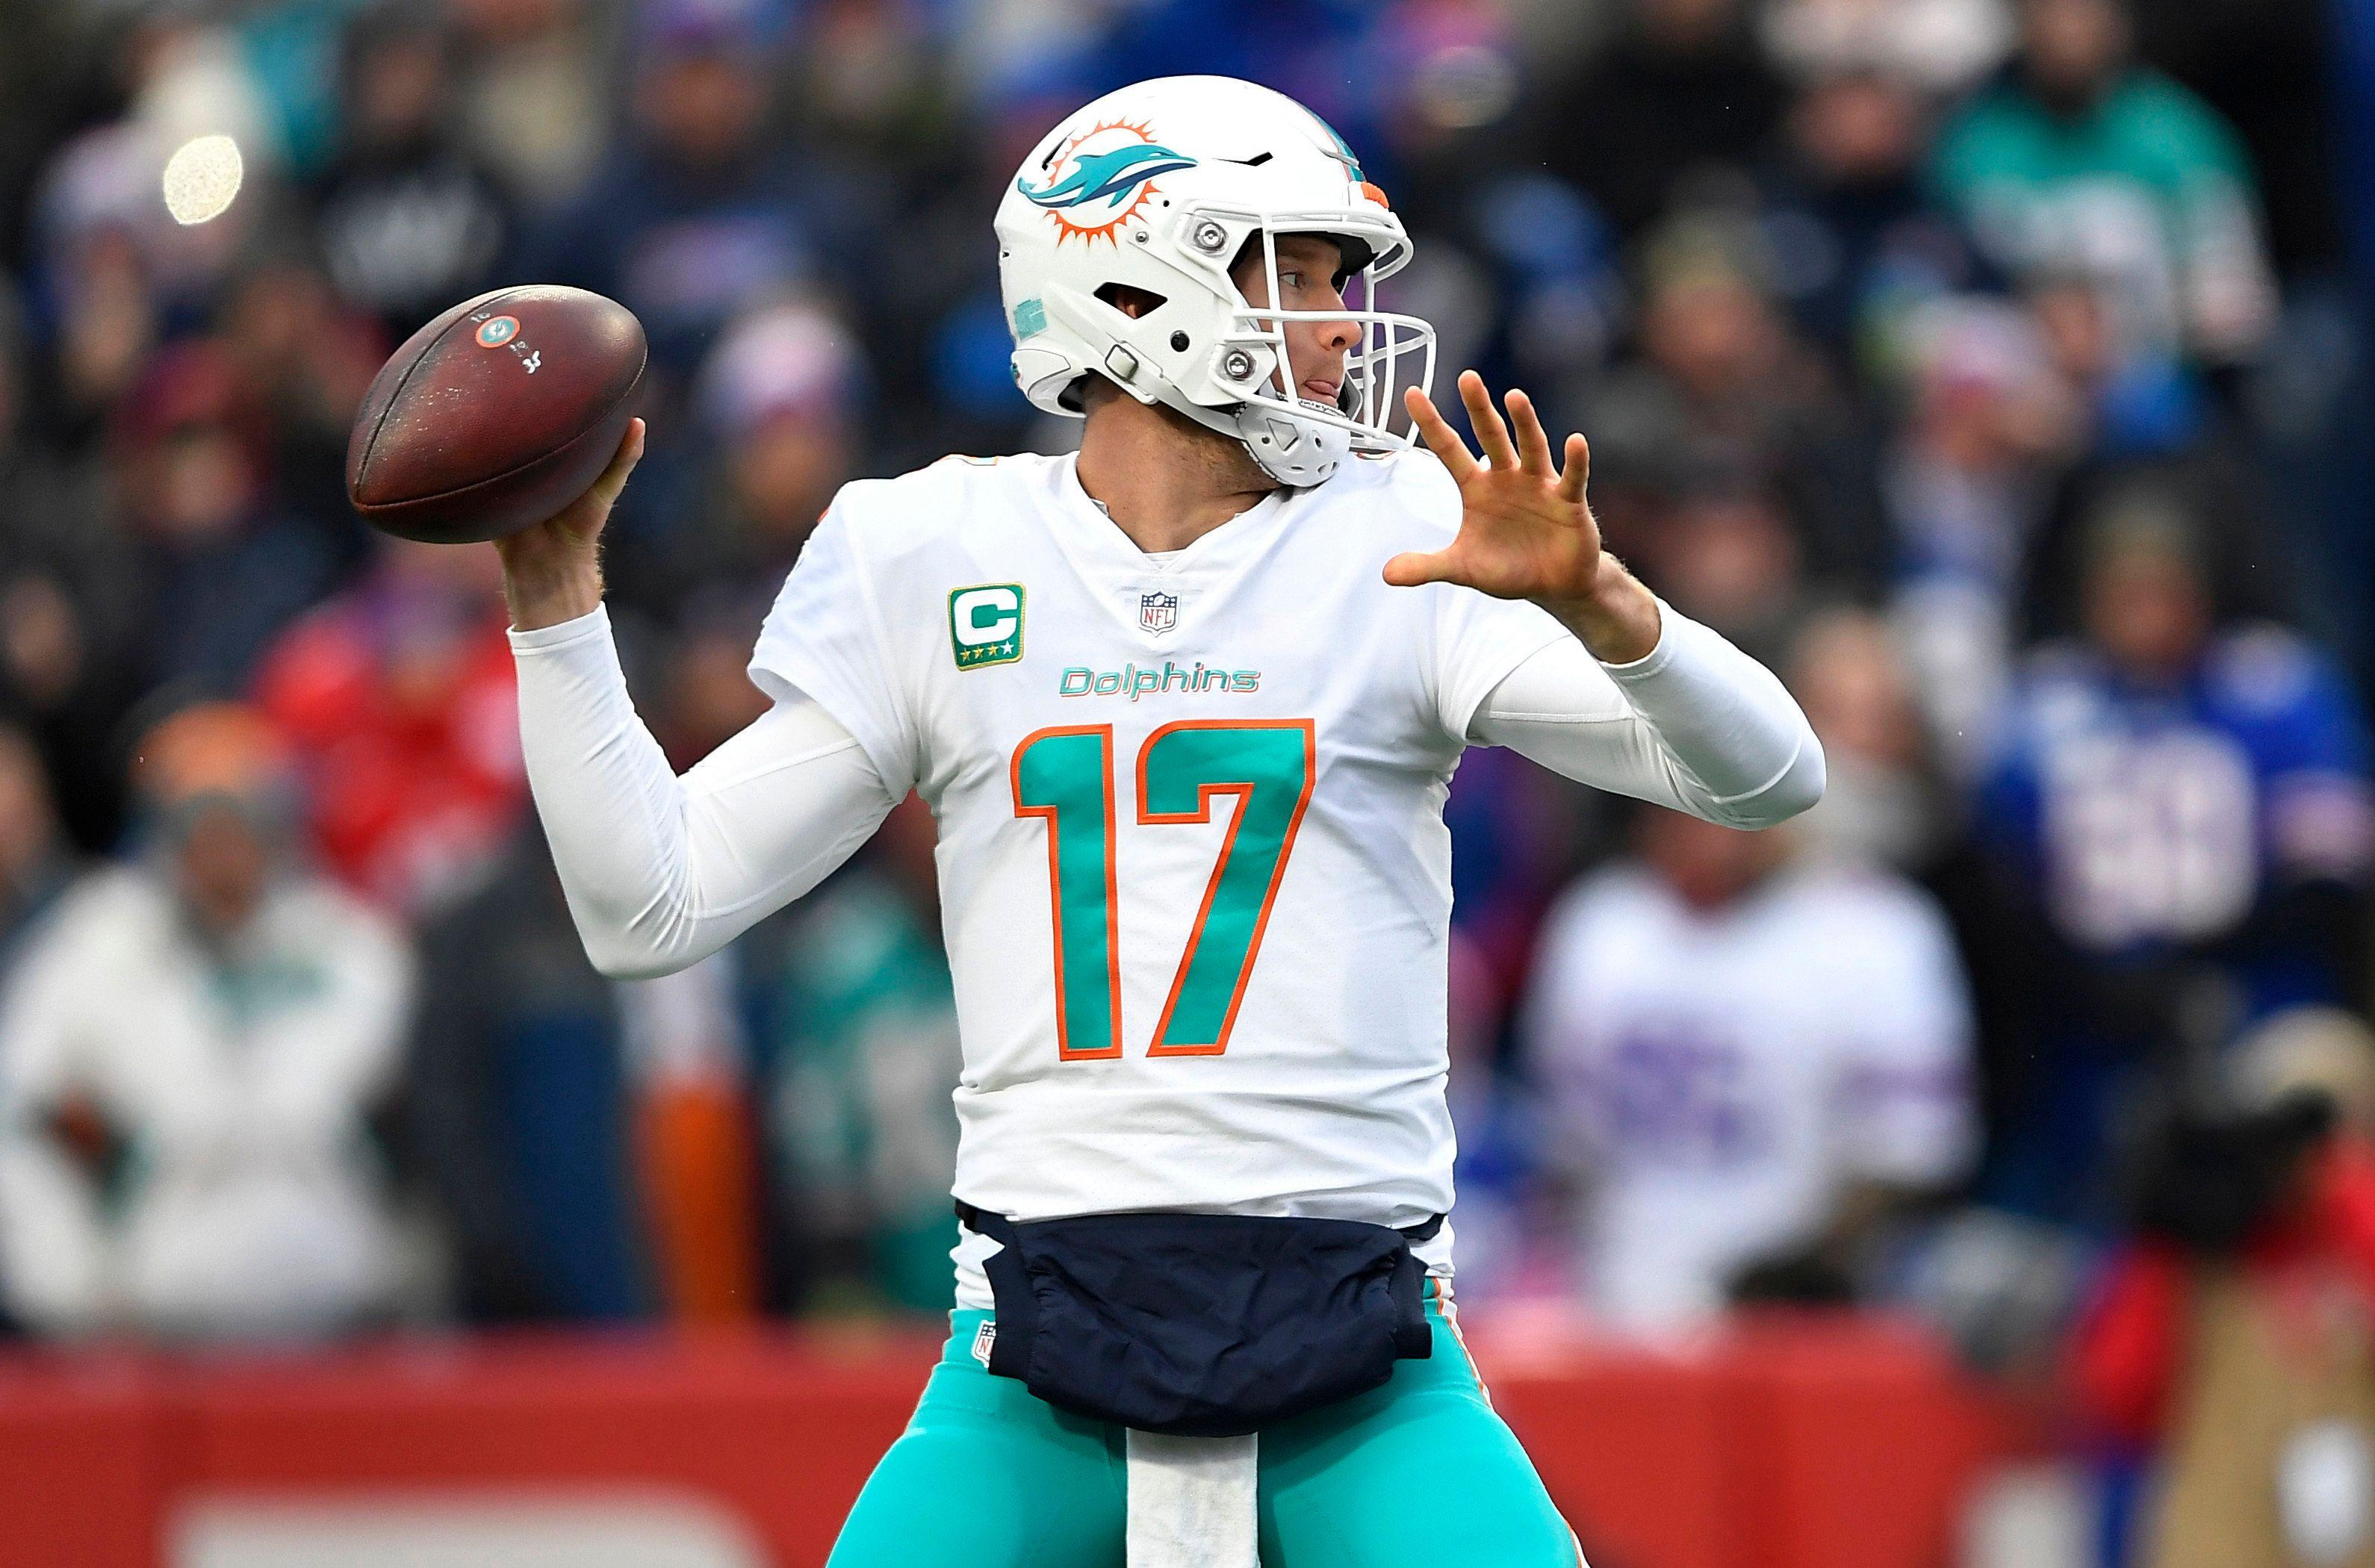 Dolphins officially give up on QB Ryan Tannehill, trade him to Titans